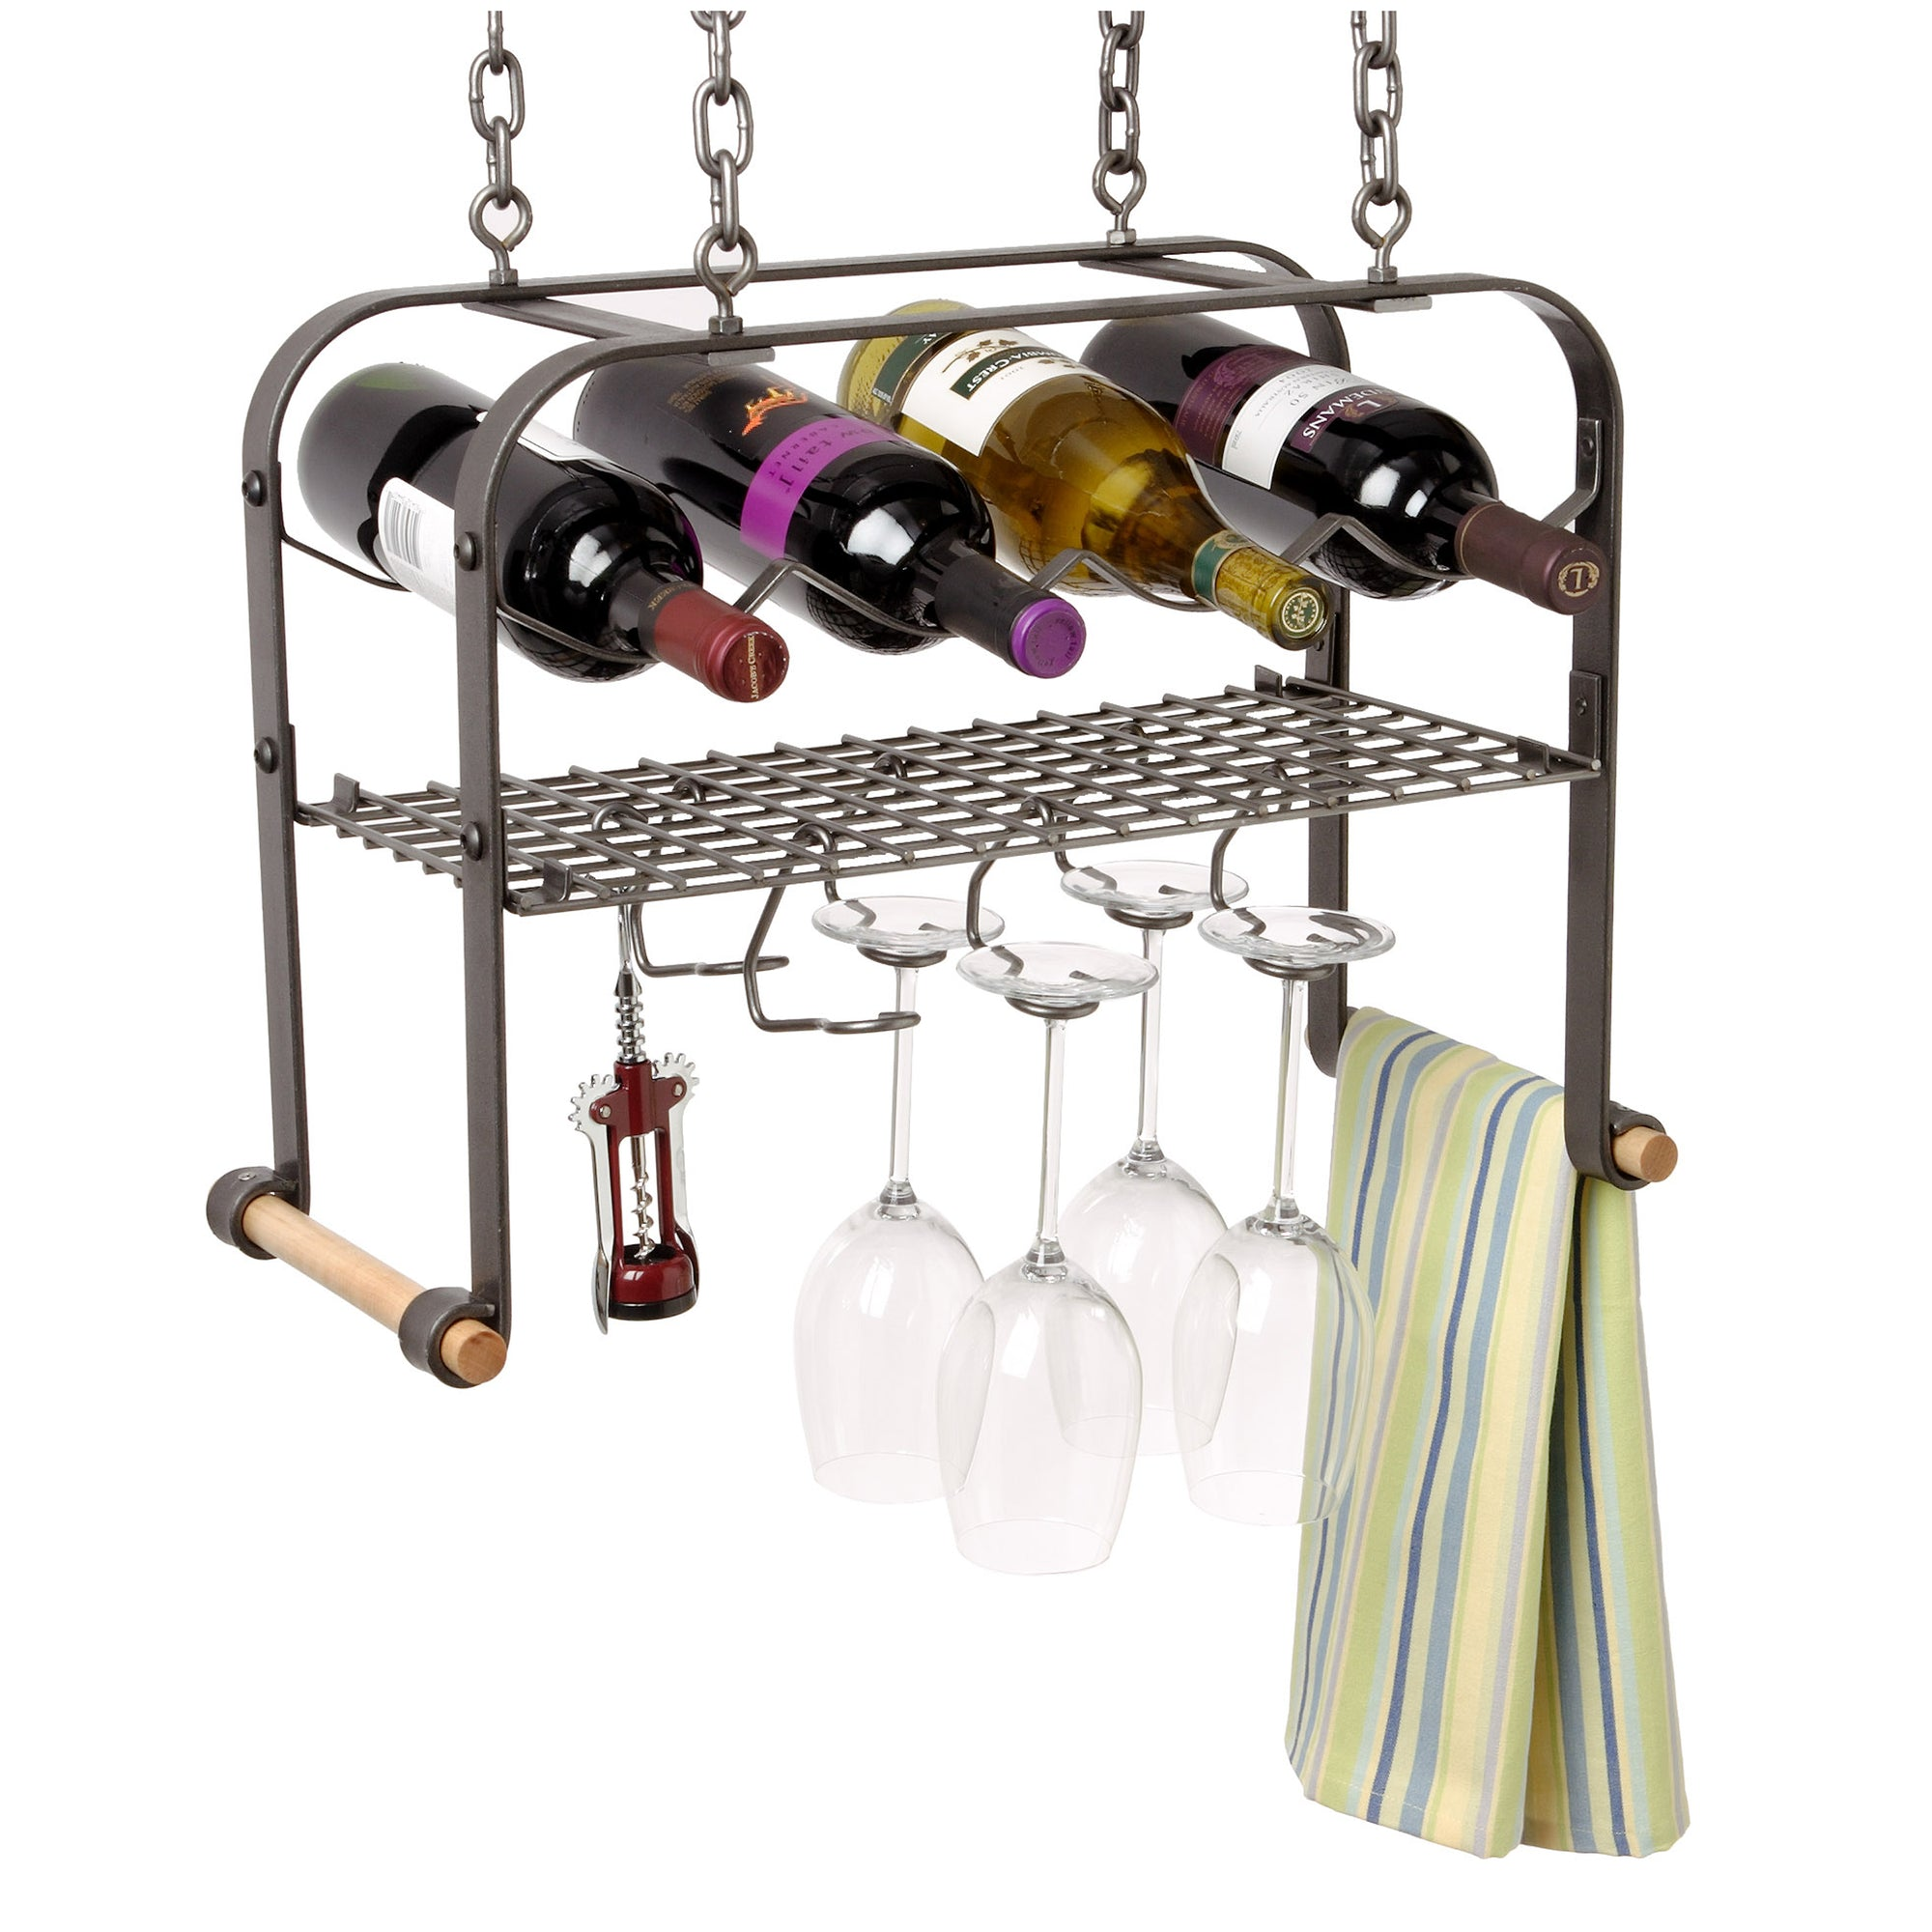 Hanging Wine Accessories Rack 4 Bottles Enclume Design Products